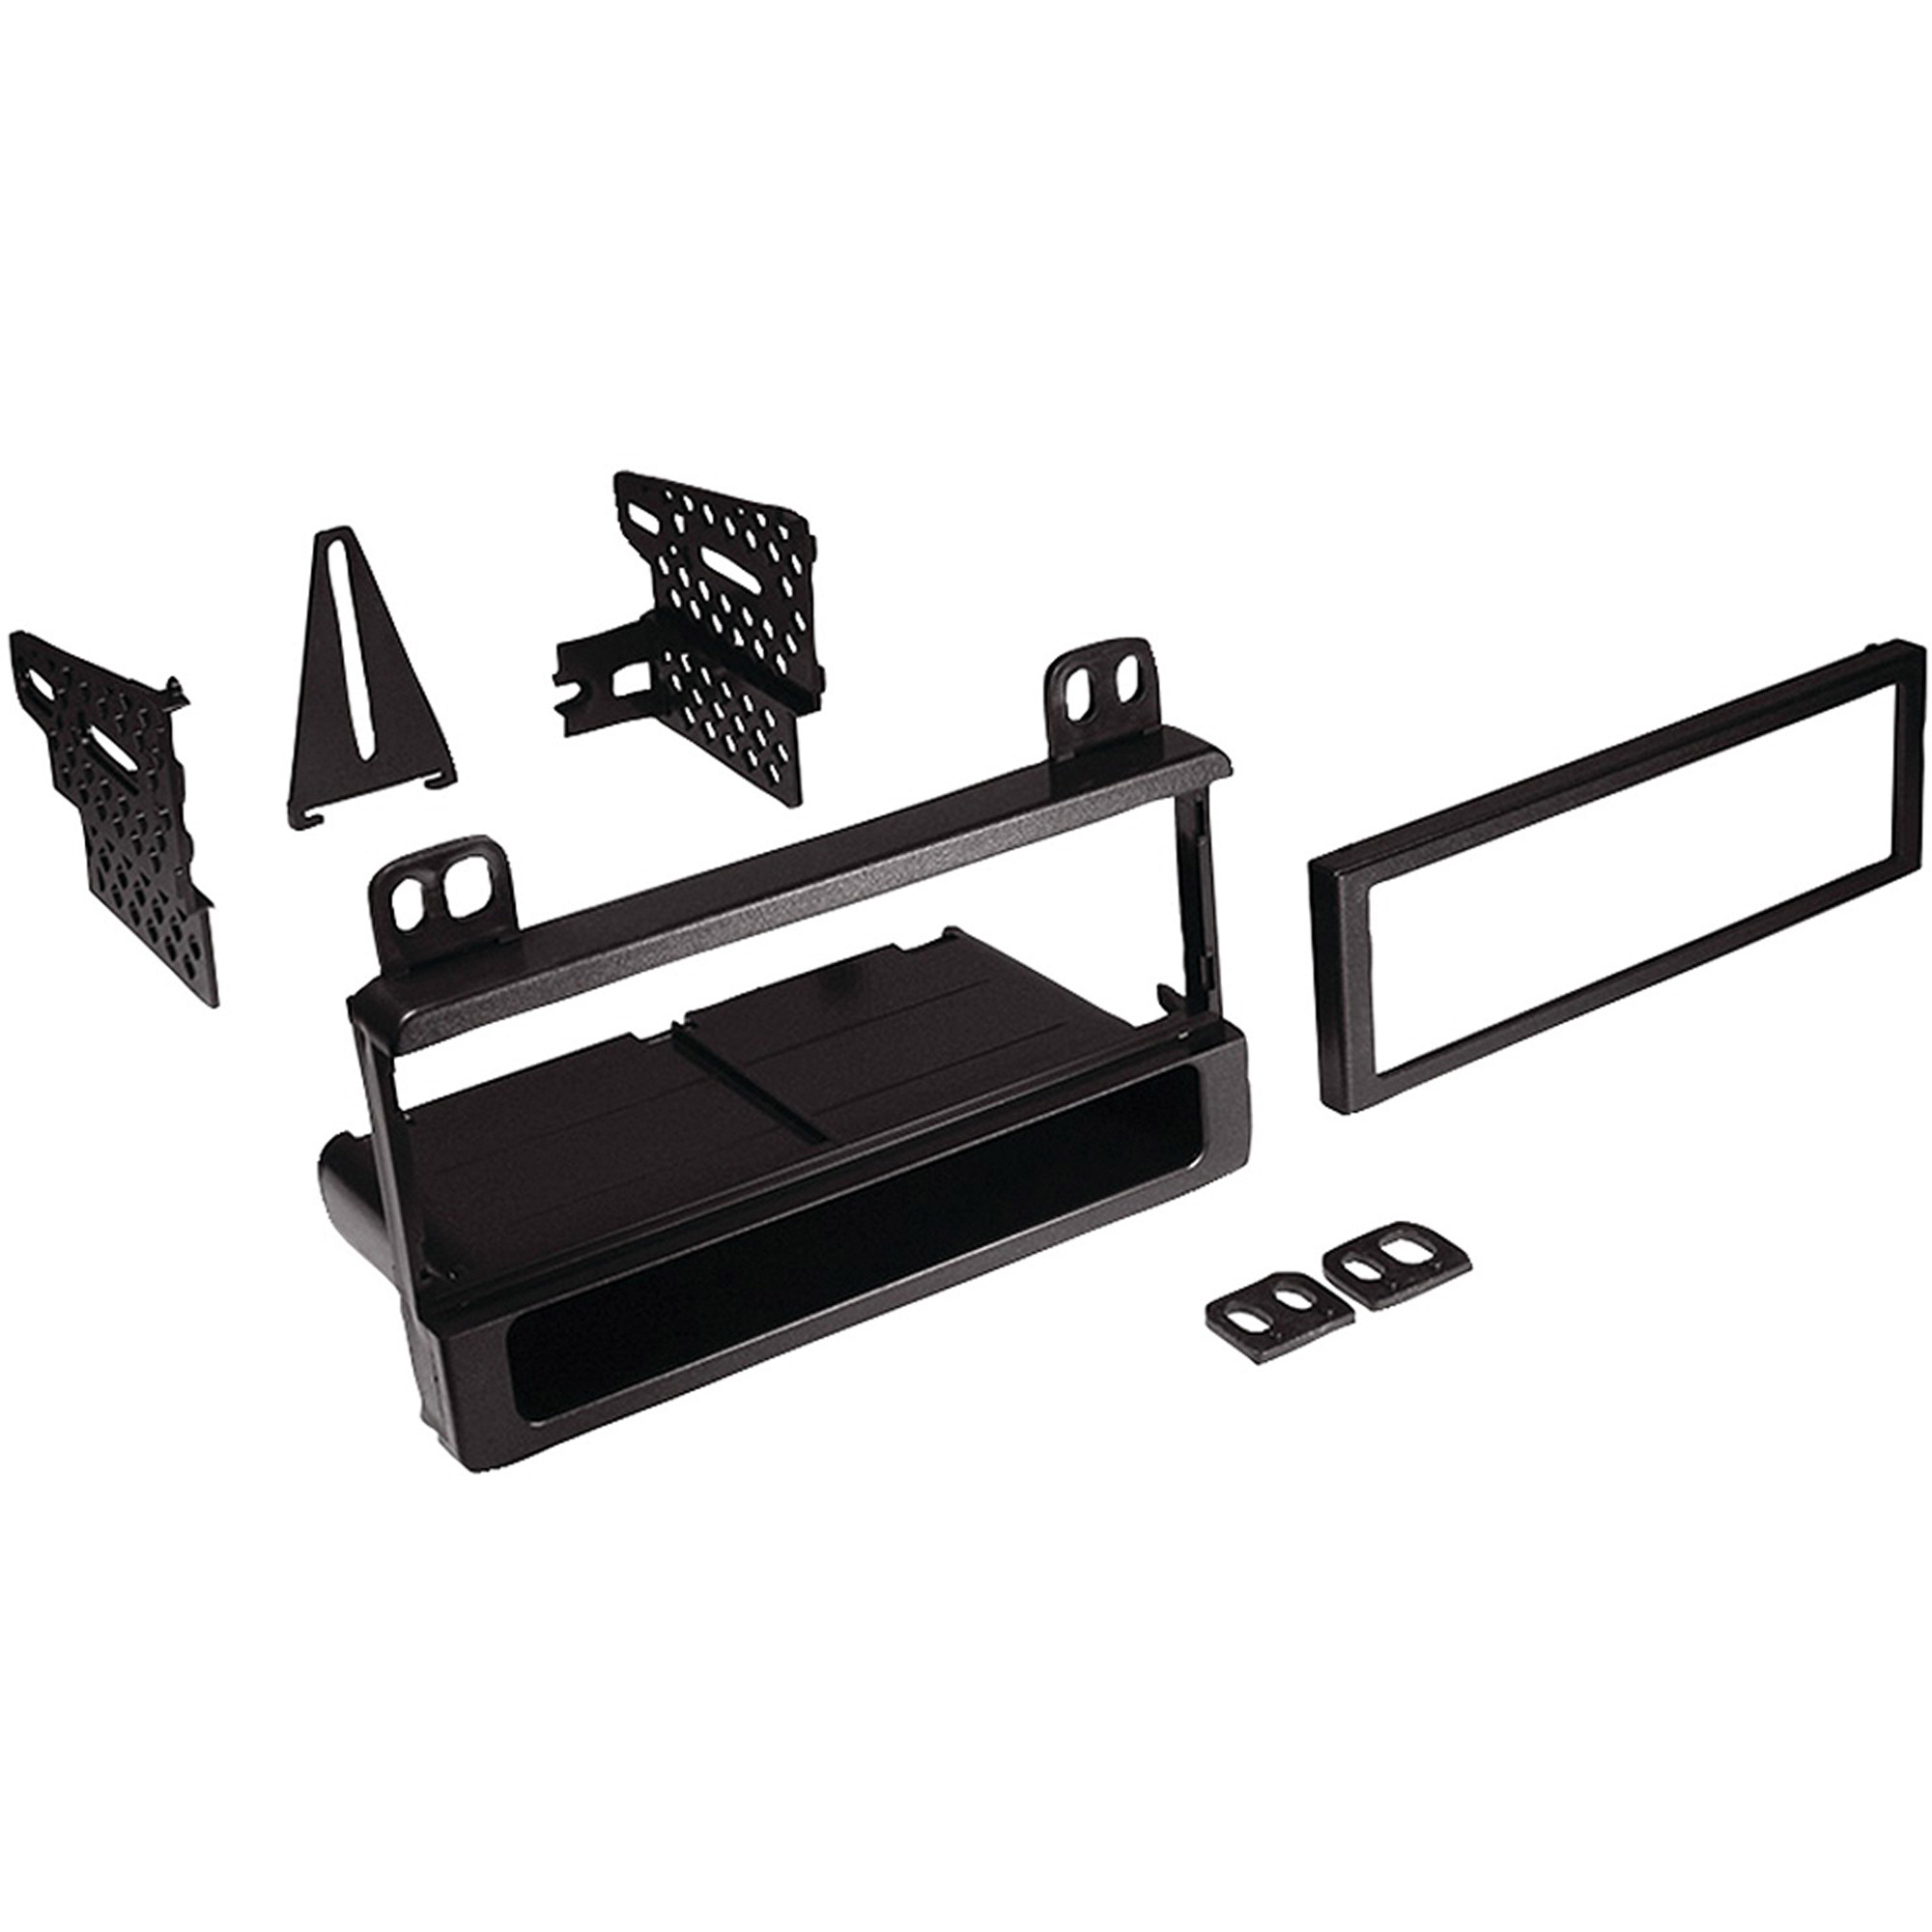 Best Kits BKFMK550 In-Dash Installation Kit (Ford Focus 2000-2004/Mercury Cougar 1999-2000 with Pocket Single-DIN)